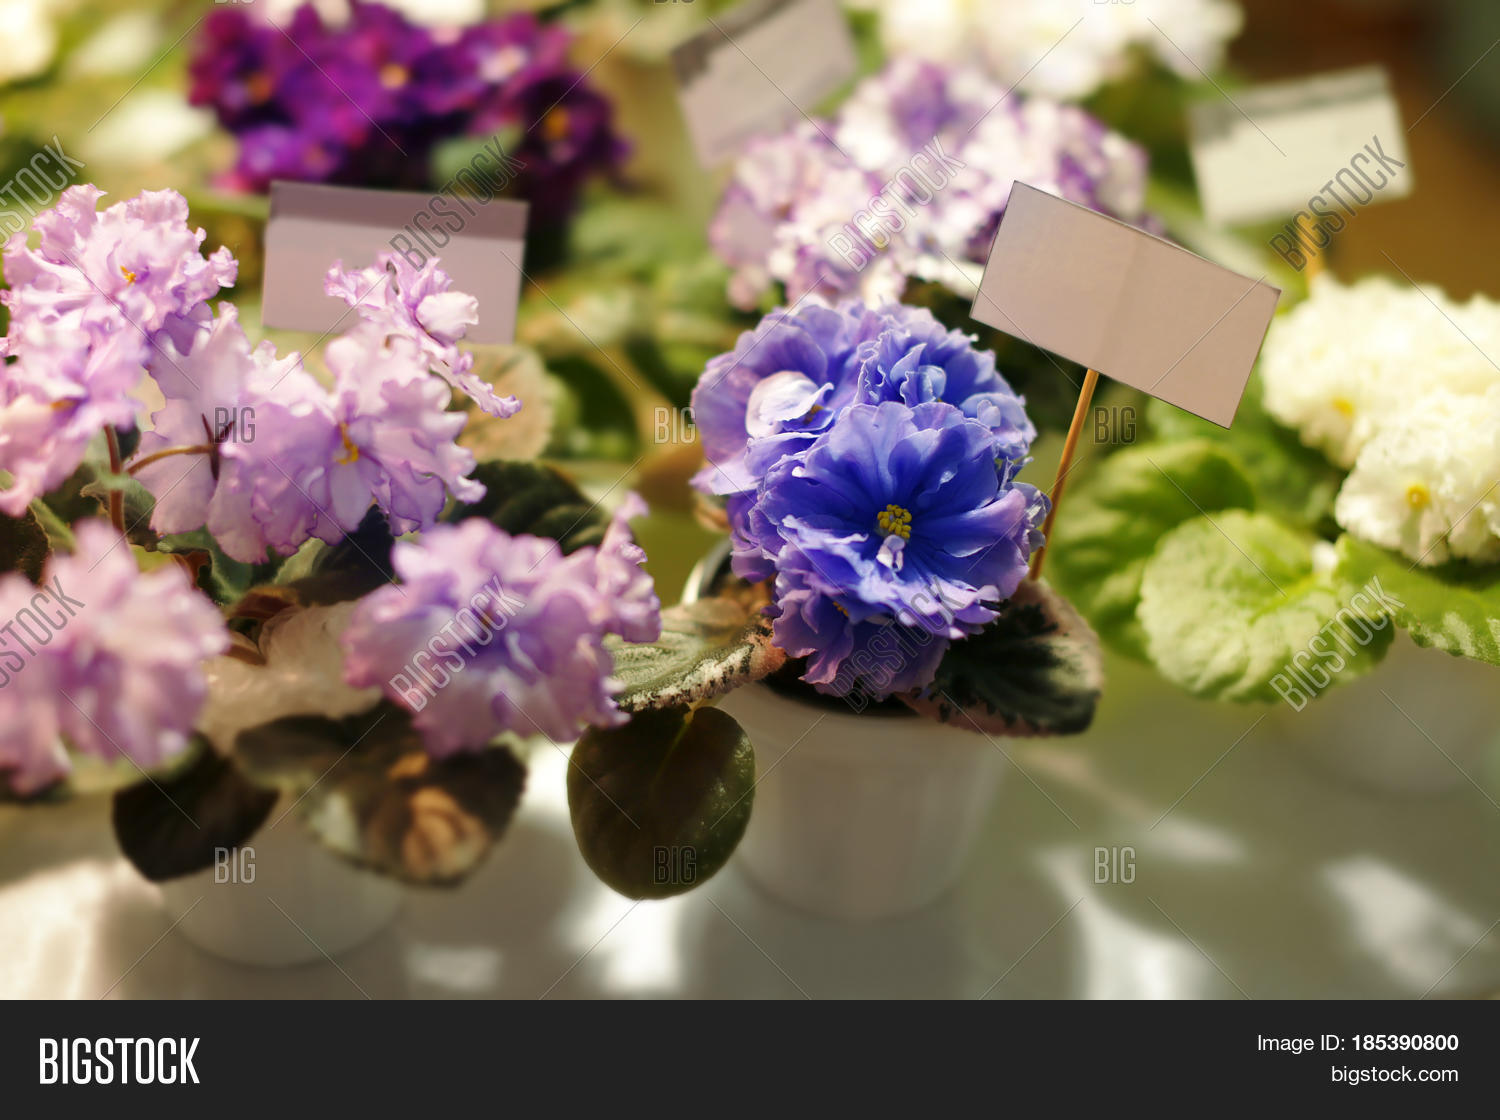 Flower Pots Beautiful Image Photo Free Trial Bigstock